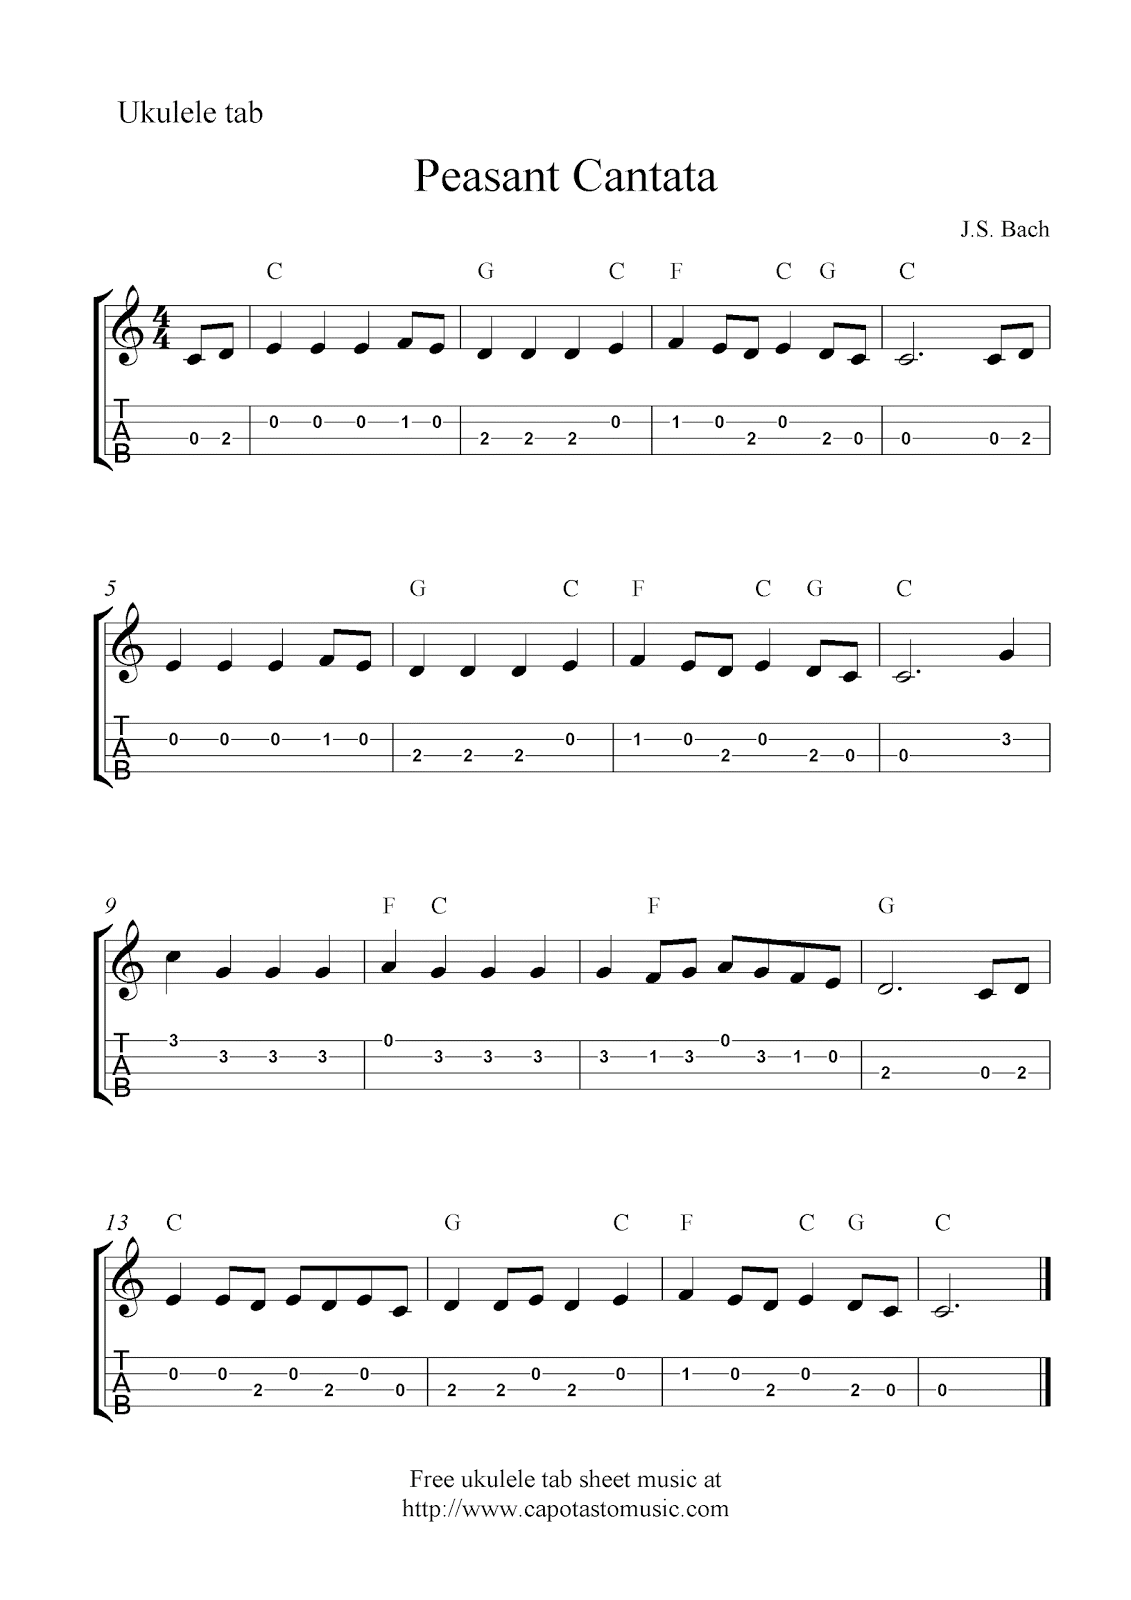 image relating to Free Printable Christmas Cantata called Peasant Cantata, cost-free ukulele tablature sheet songs